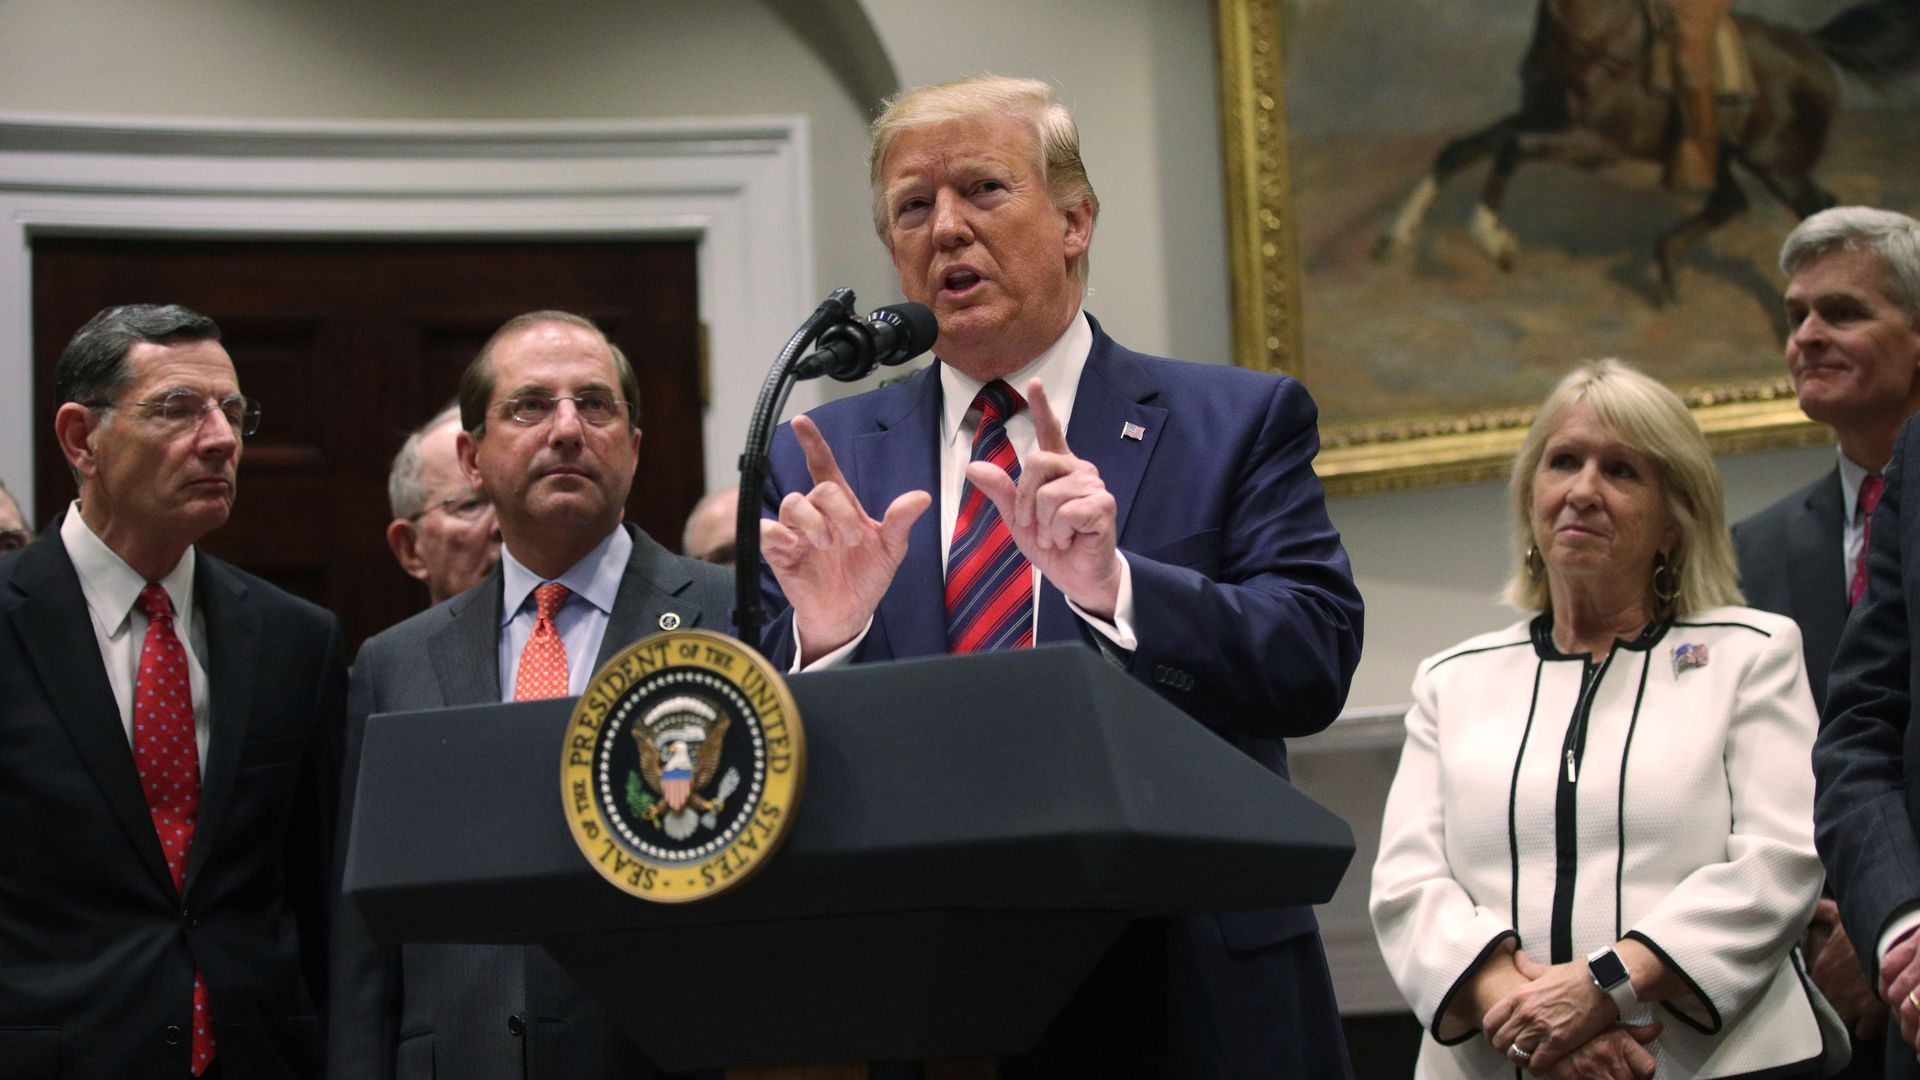 President Trump, alongside HHS Secretary Alex Azar and Republican members of Congress